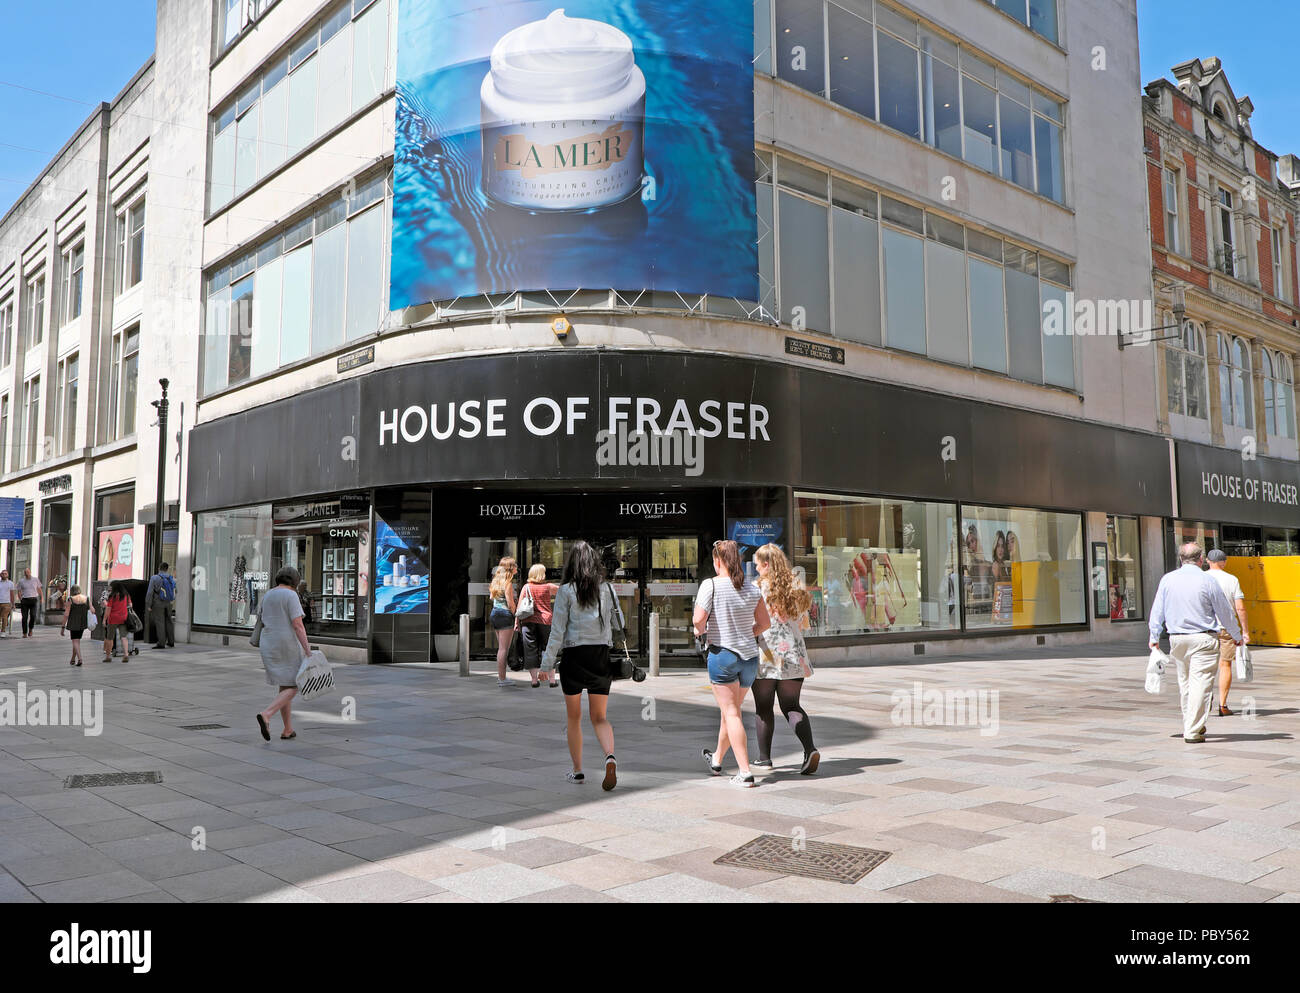 House of Fraser Department Store due for closure in January 2019 Cardiff city centre Wales UK  KATHY DEWITT - Stock Image